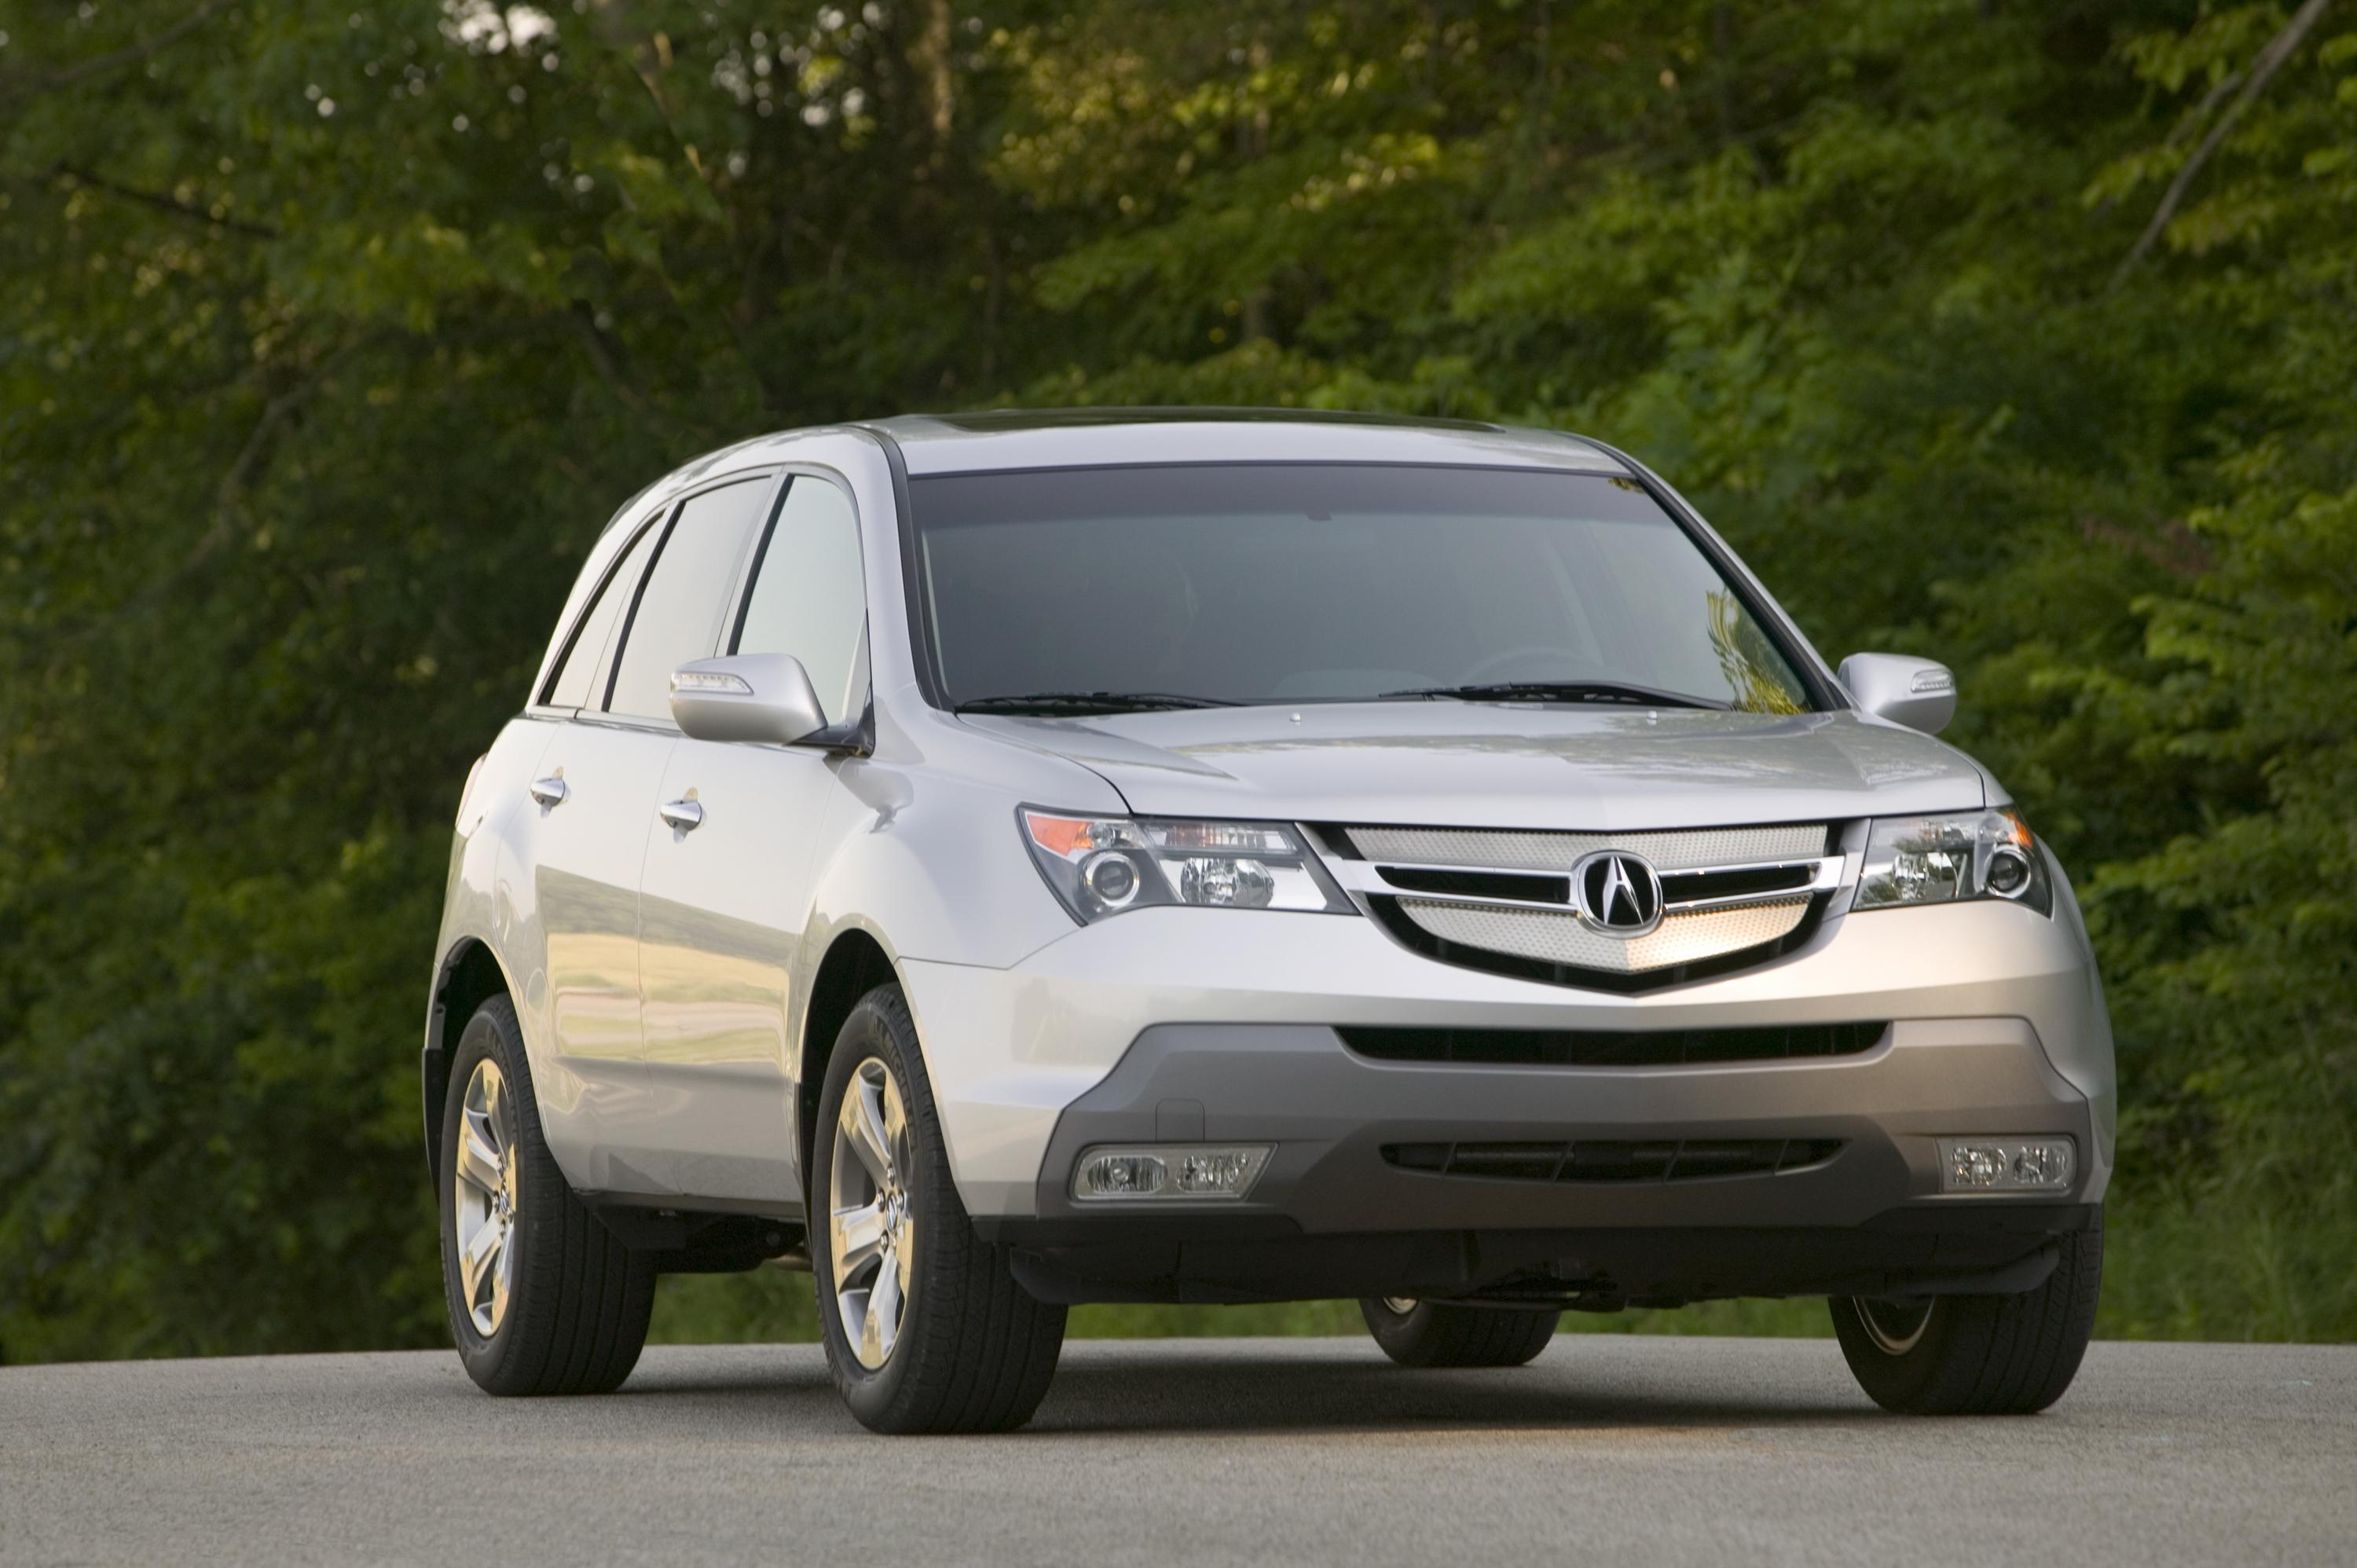 2007 Acura MDX | Top Speed. »